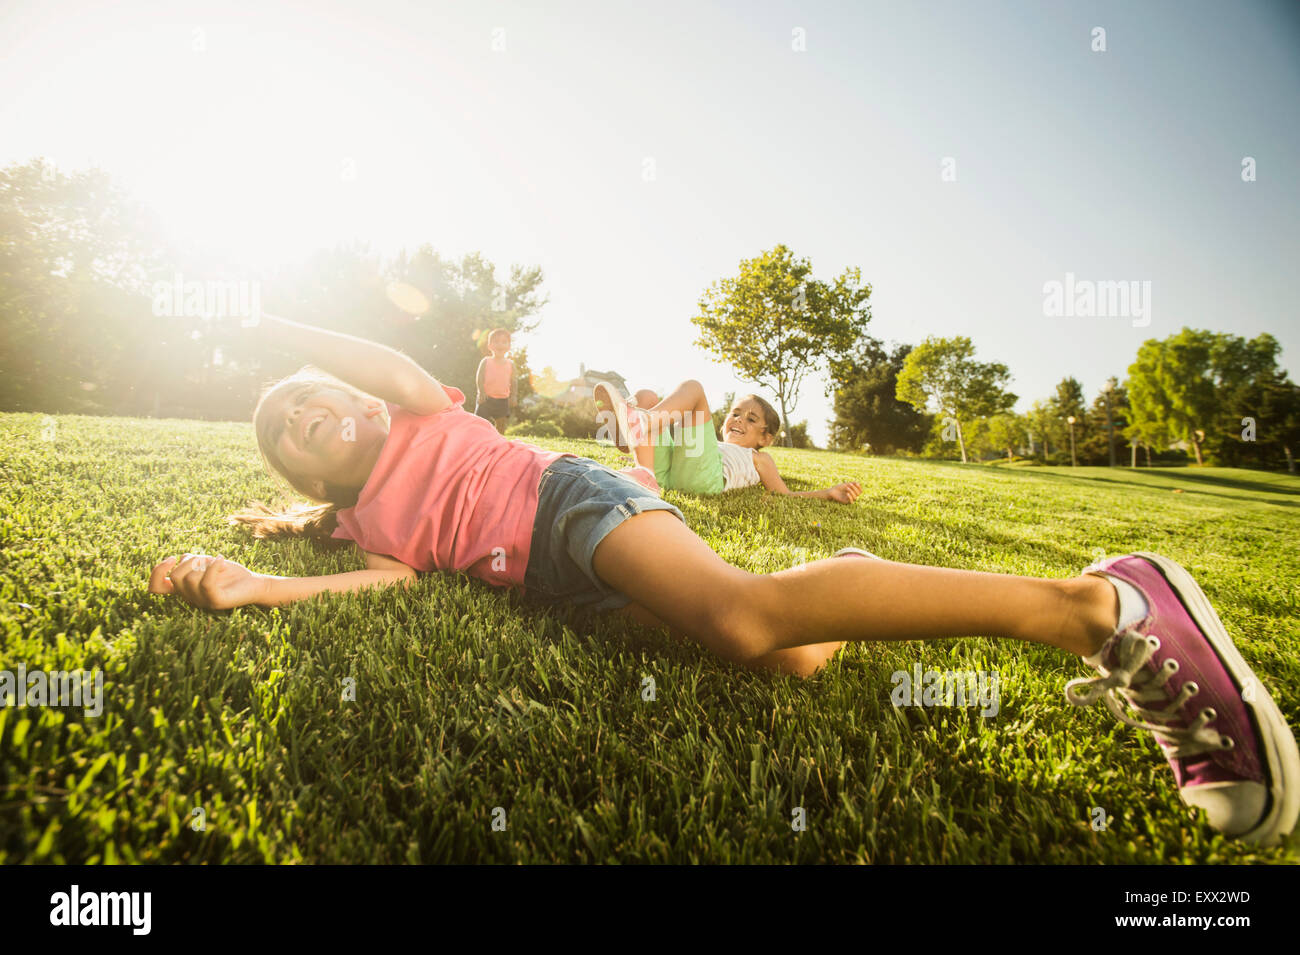 Siblings (2-3, 6-7, 8-9) playing in park - Stock Image